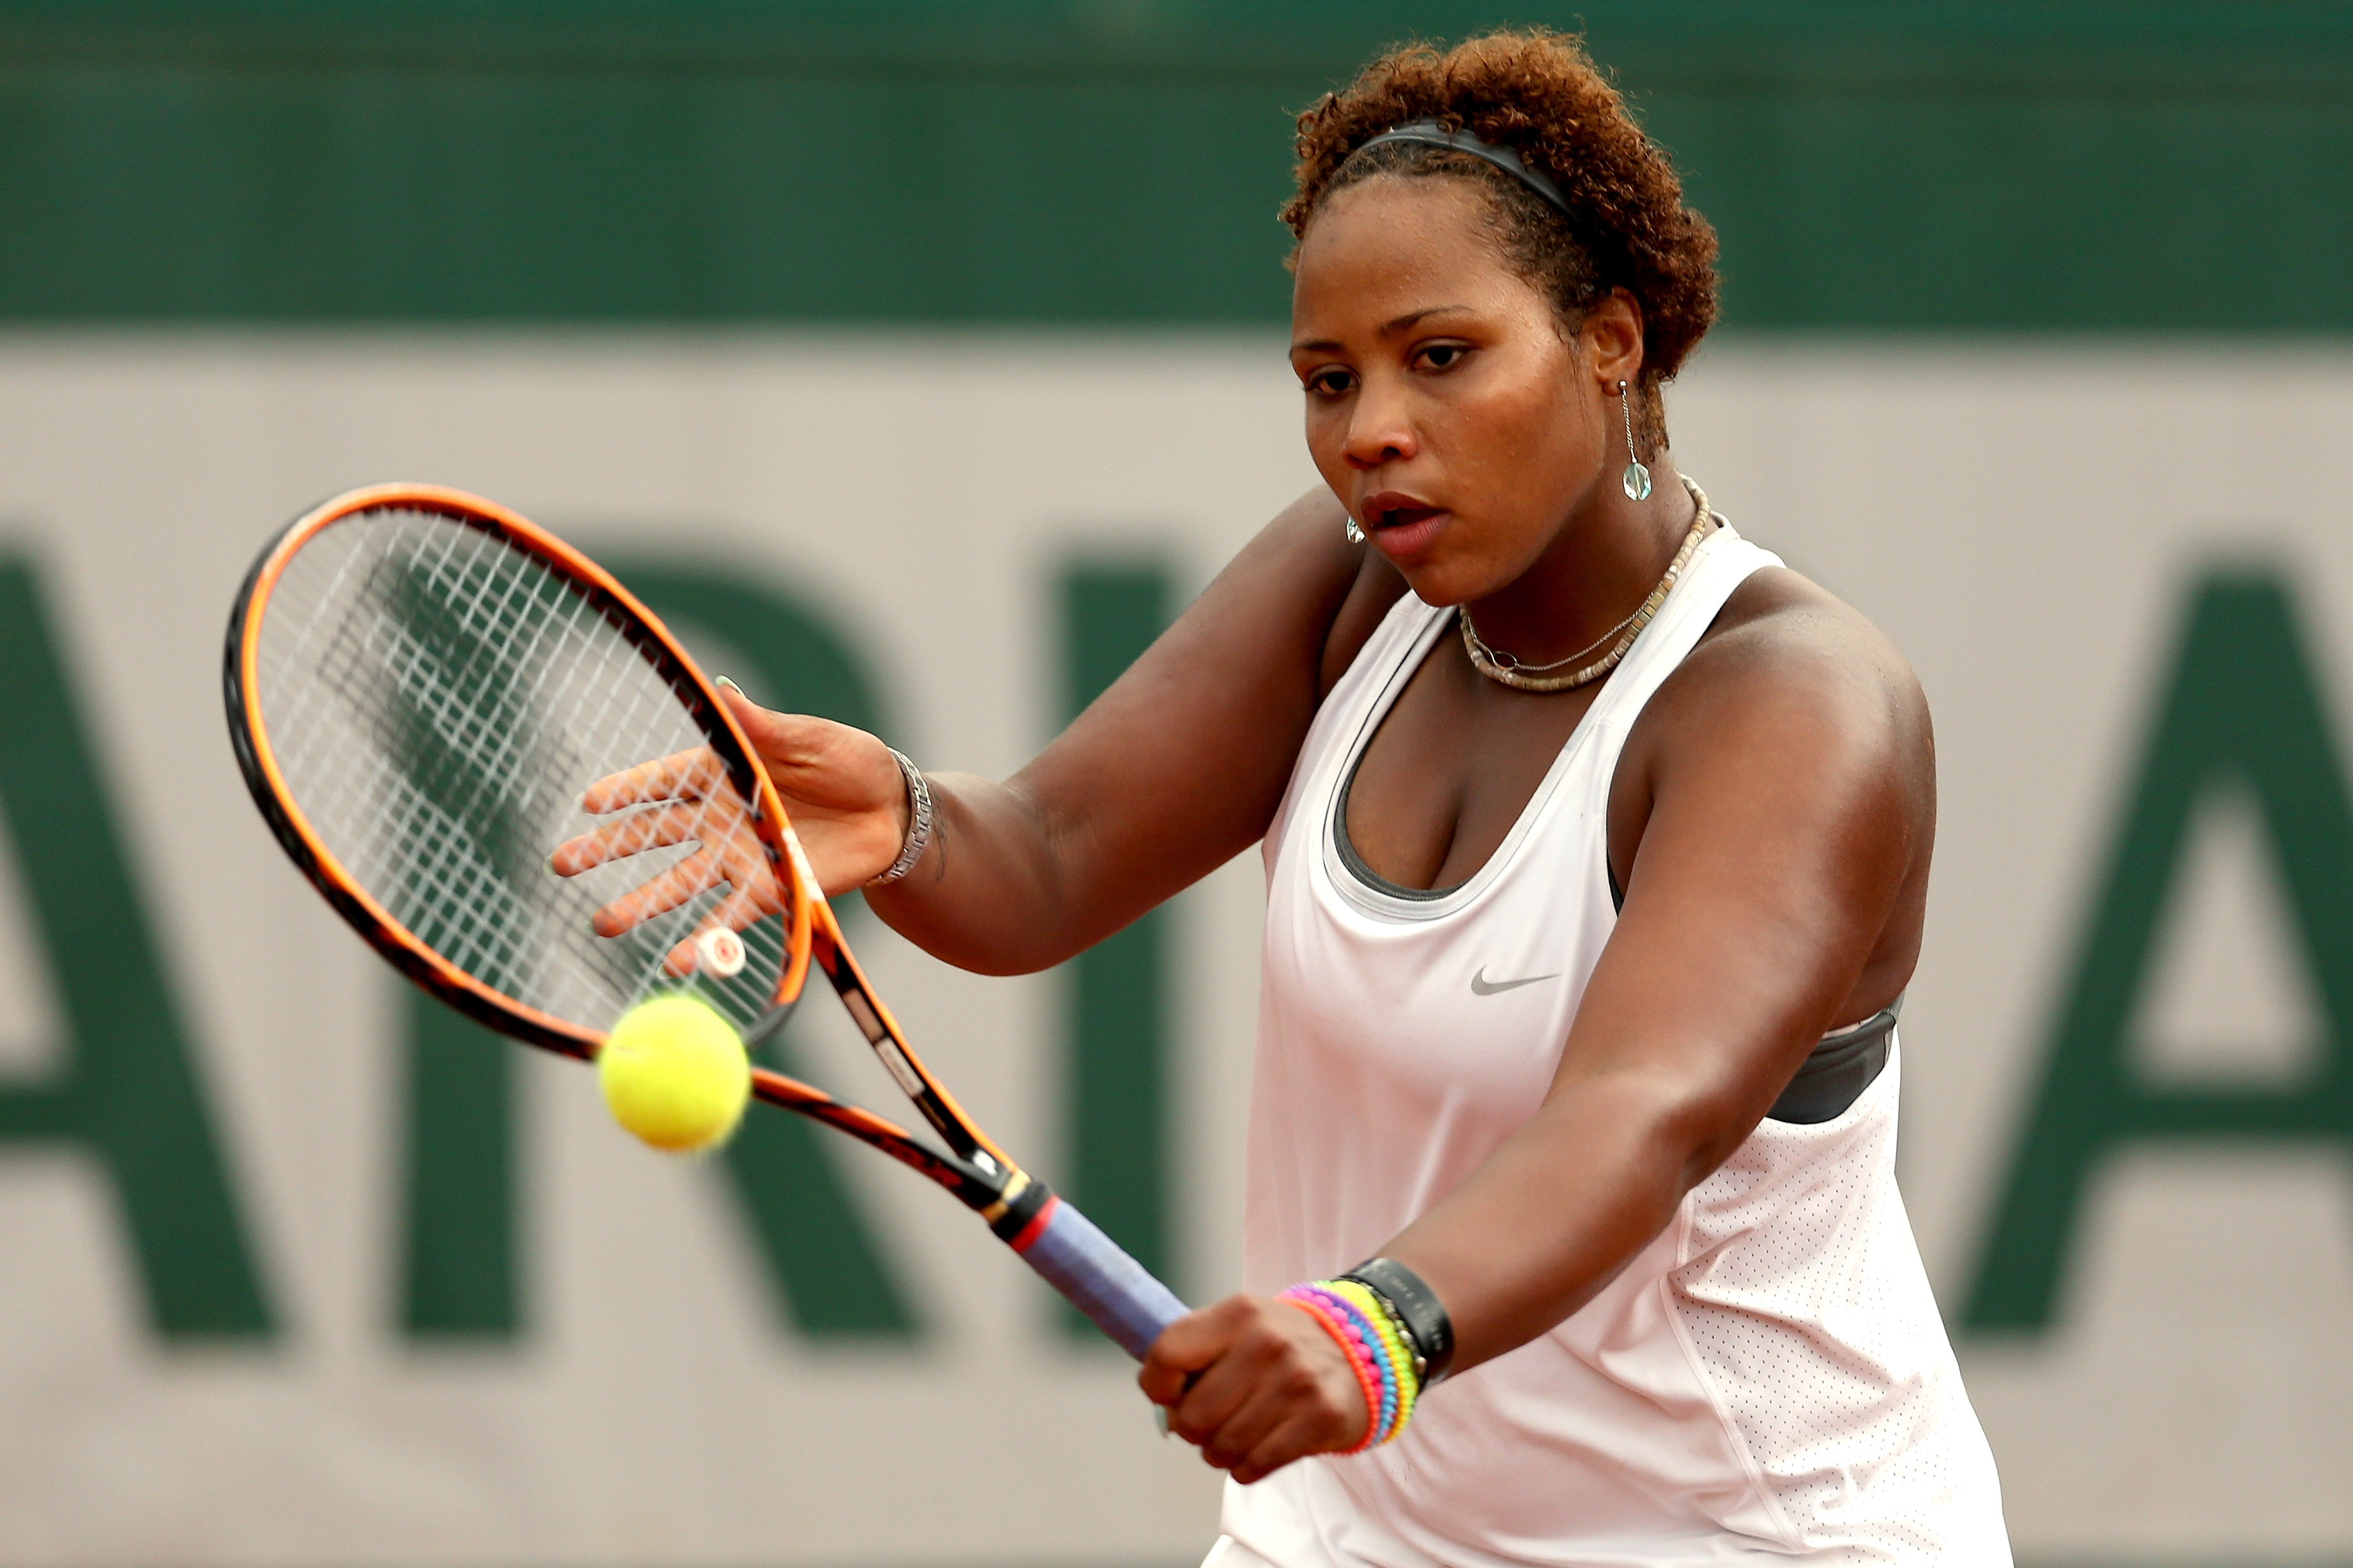 Tennis player Taylor Townsend overcomes questions about ...